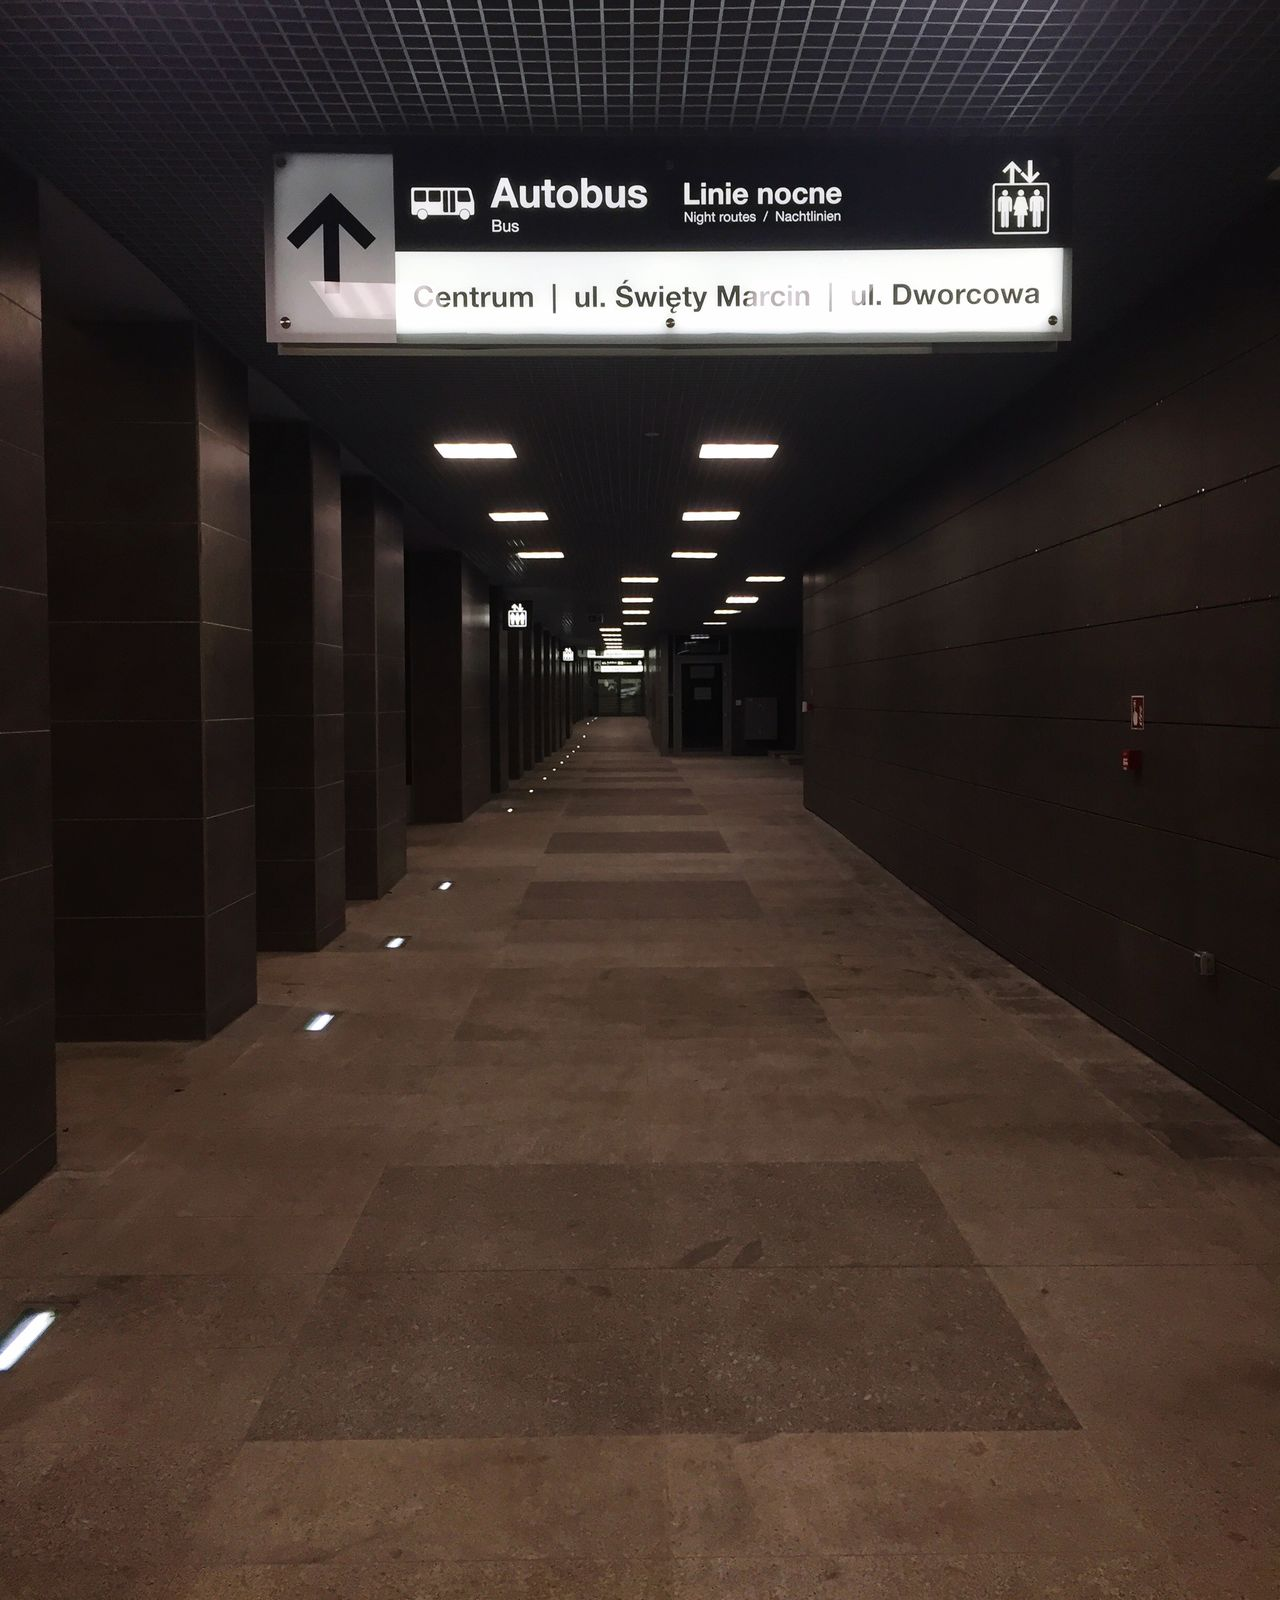 Illuminated Communication Subway Station Indoors  Tiled Floor Text Information Sign The Way Forward Built Structure Architecture No People Exit Sign